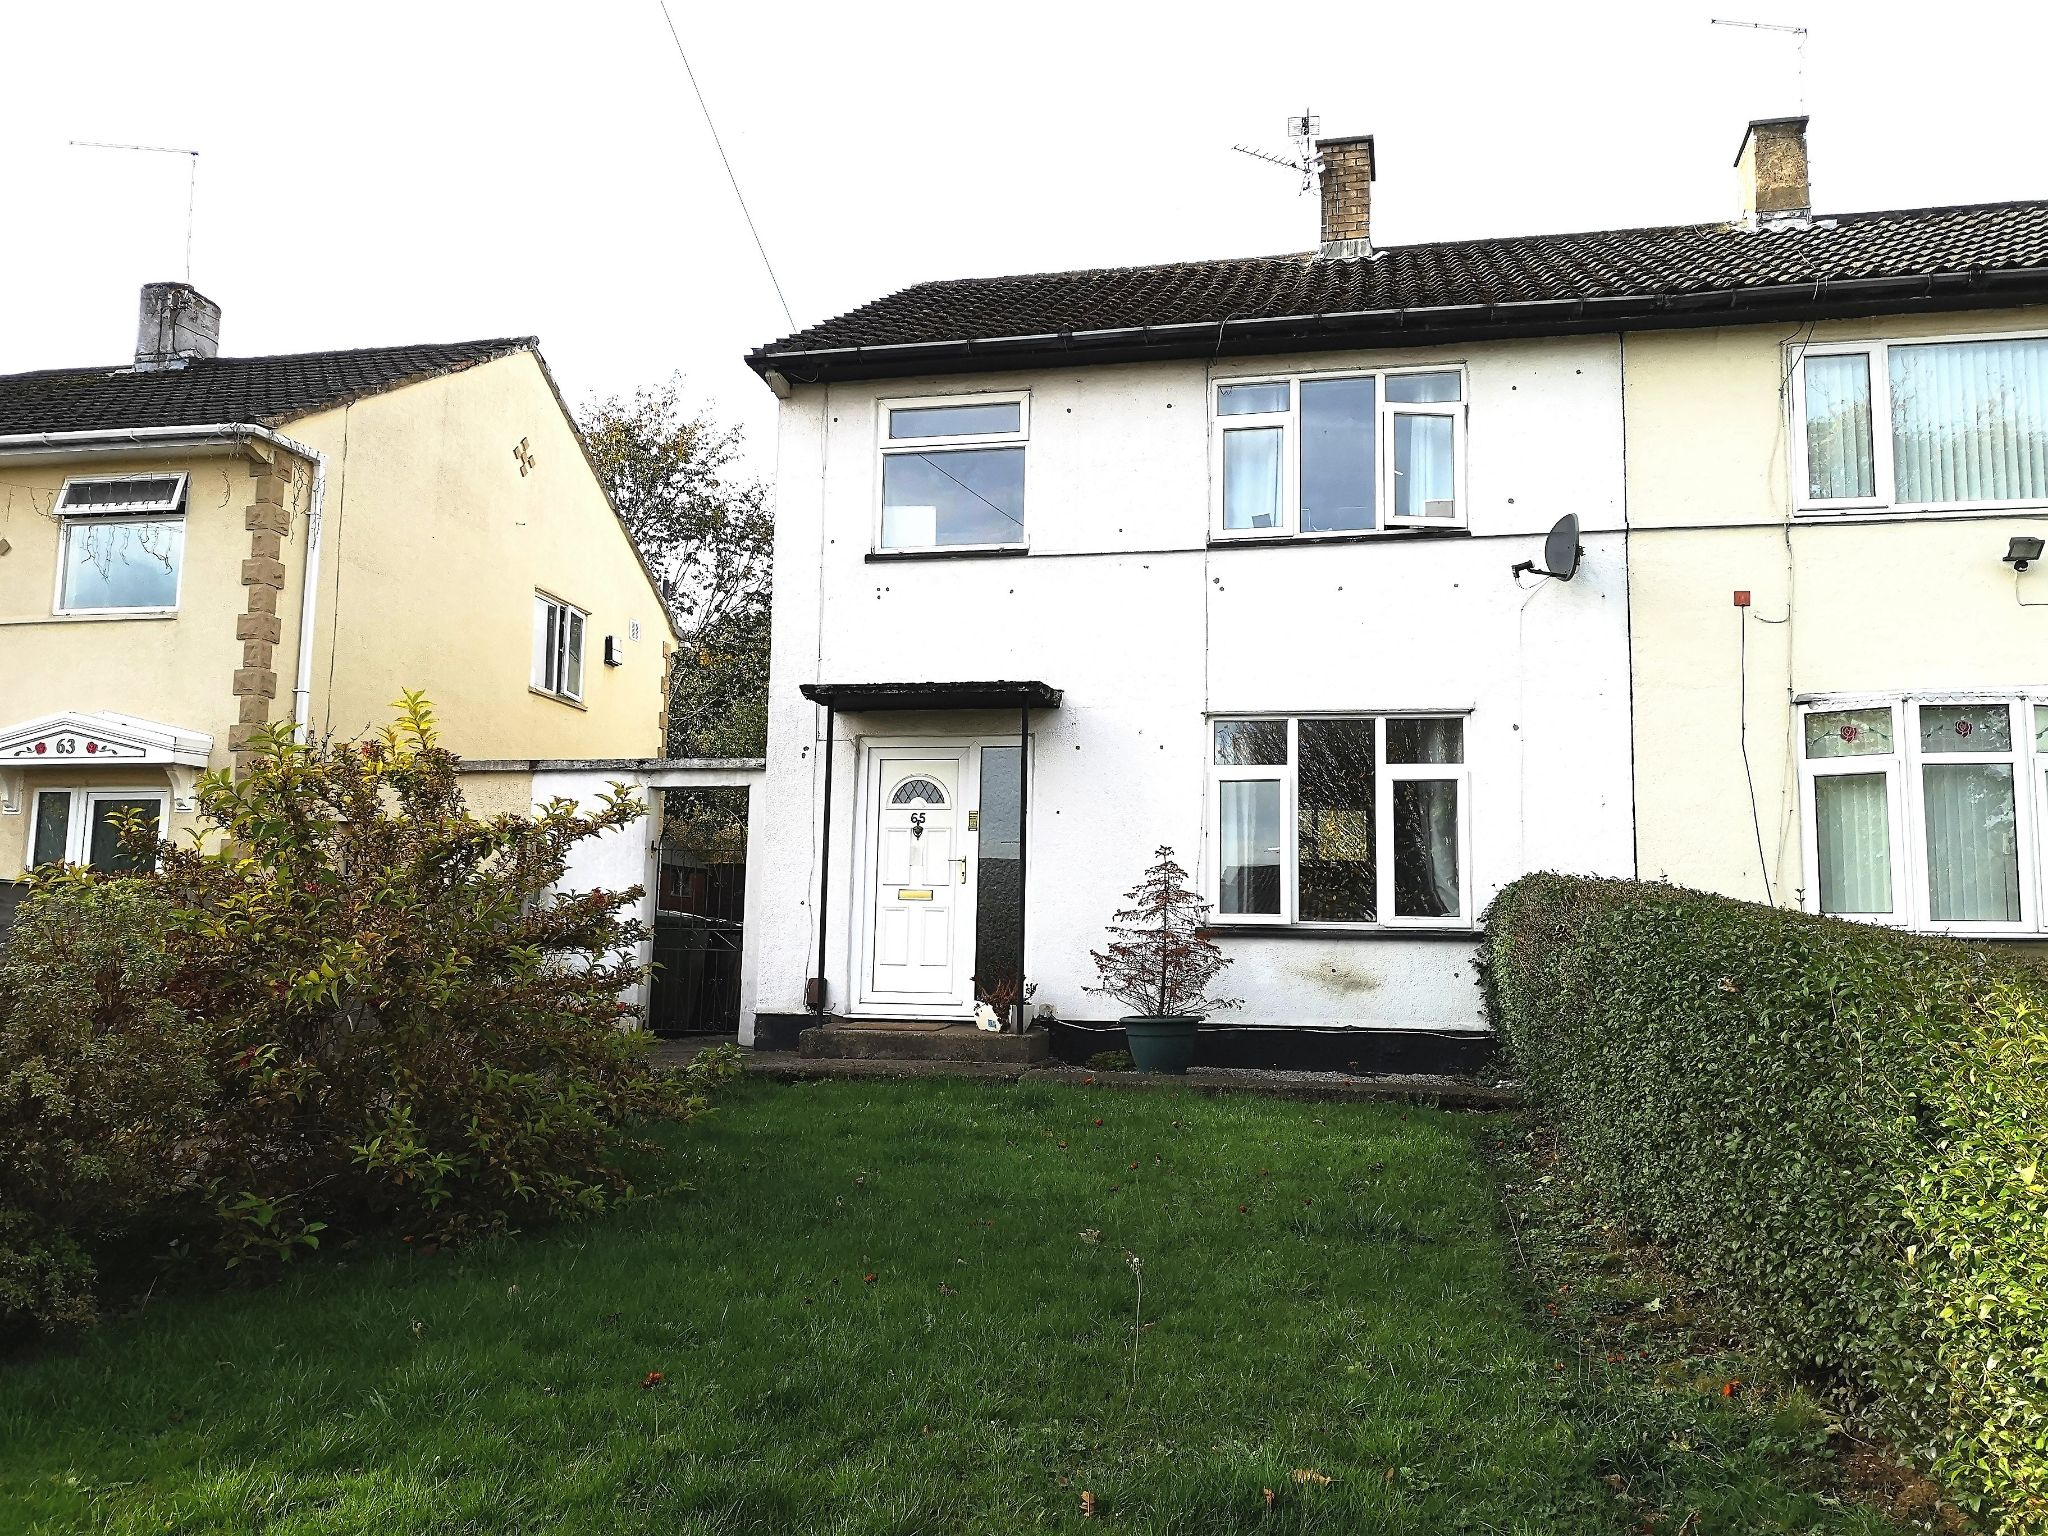 3 bedroom semi-detached house Sold in Huddersfield - Photograph 3